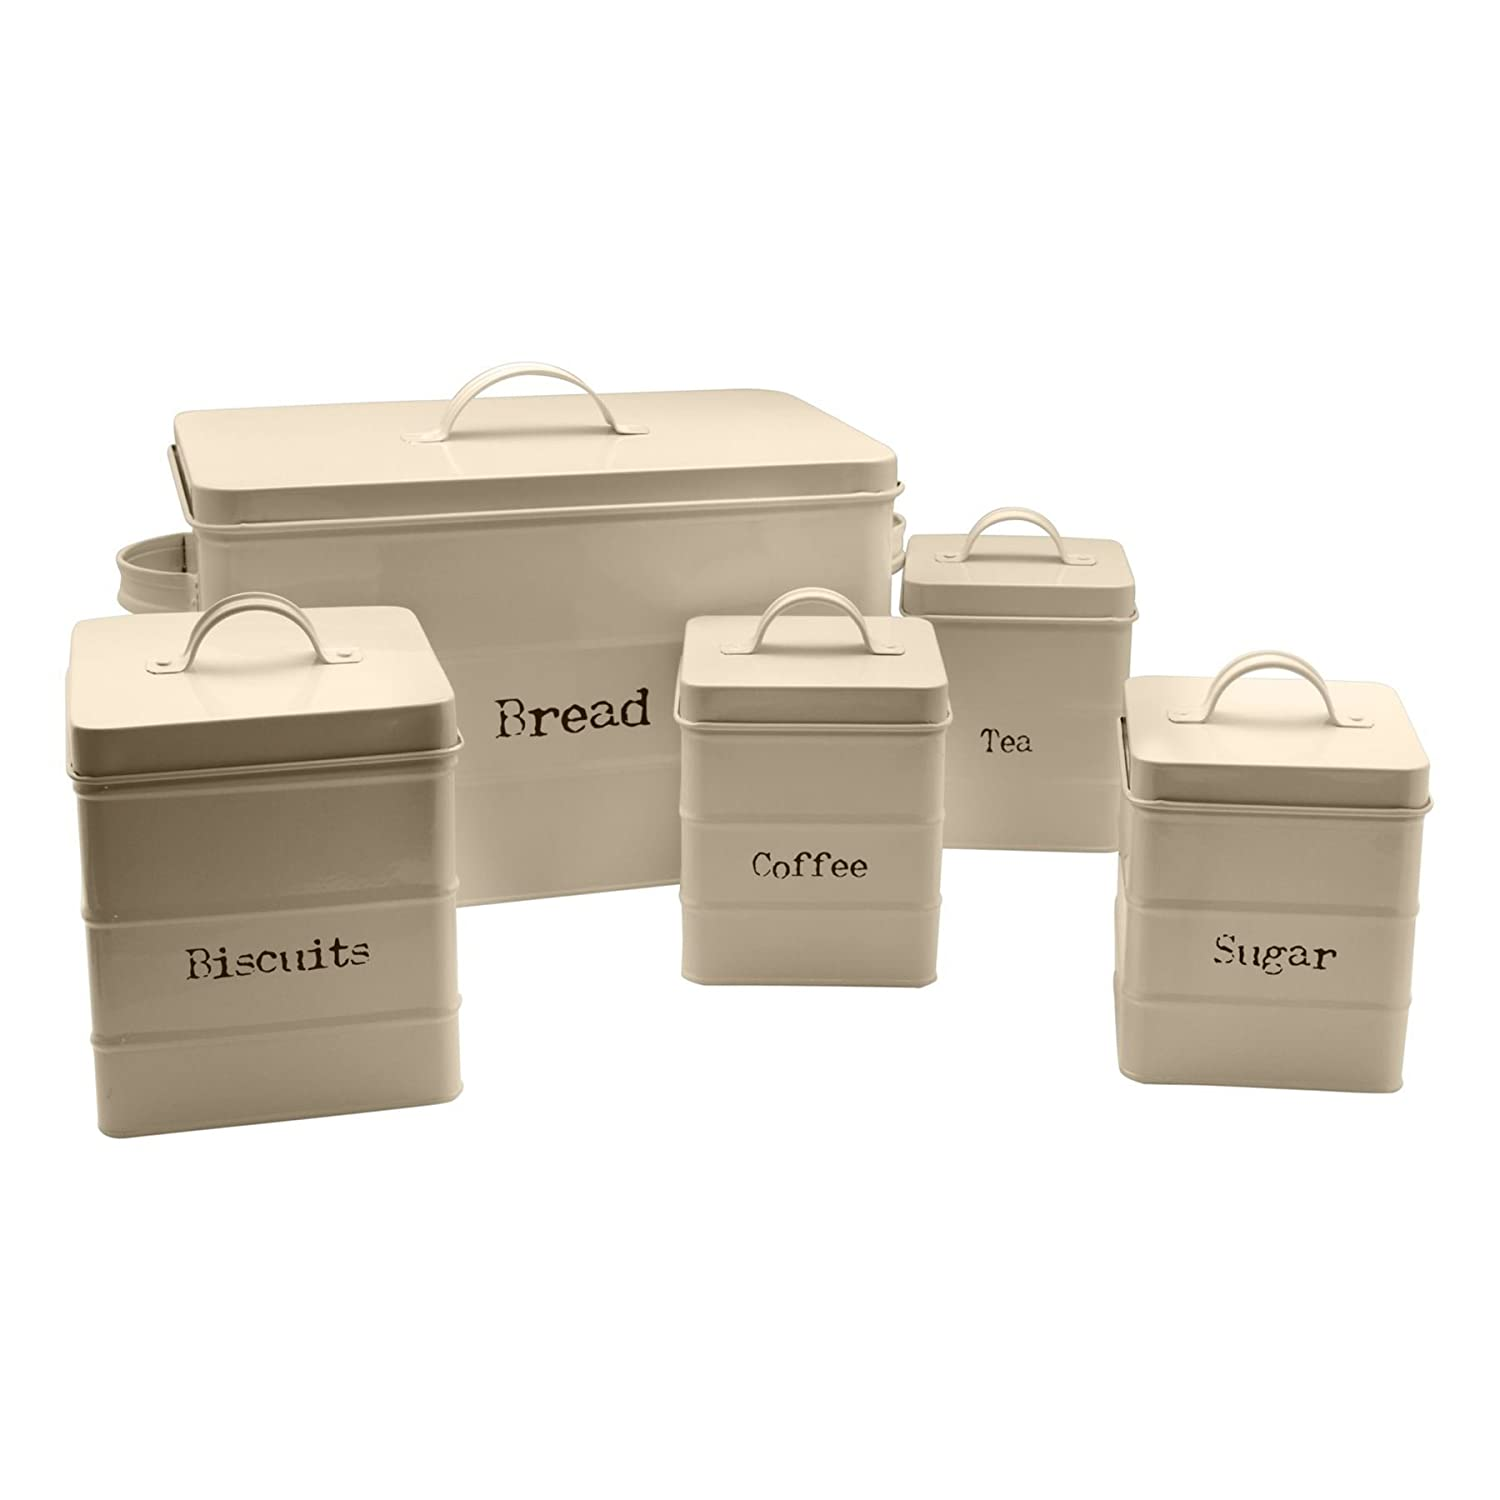 Harbour Housewares Metal Bread Bin and Canister Set - Cream